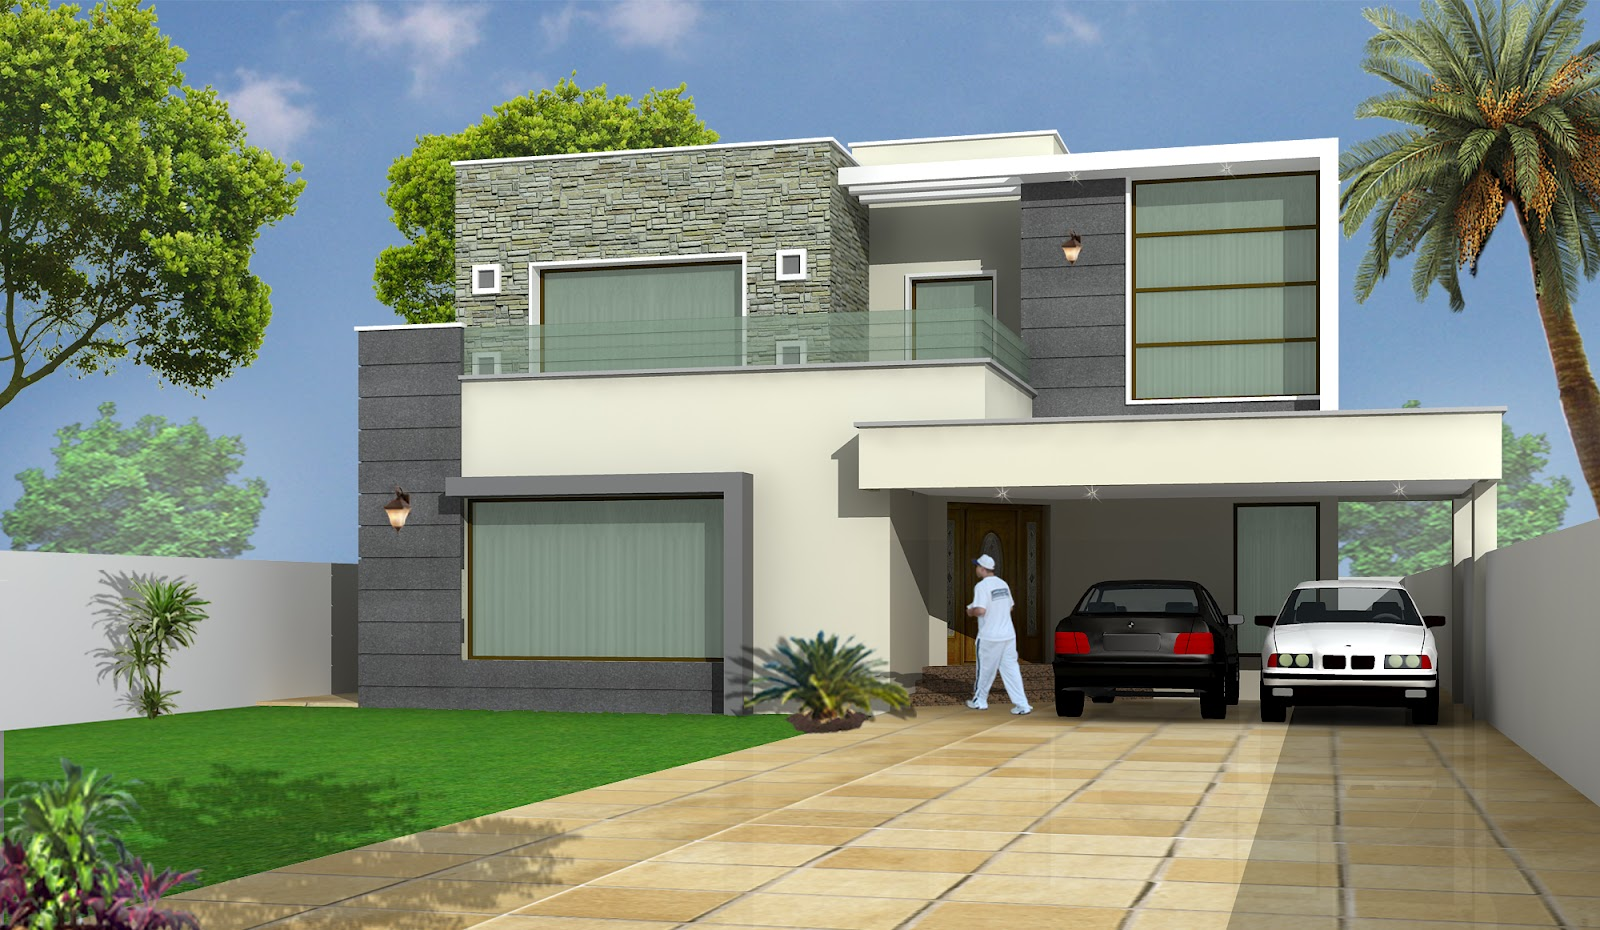 Architectural drawing dream house for Architectural drawings of houses